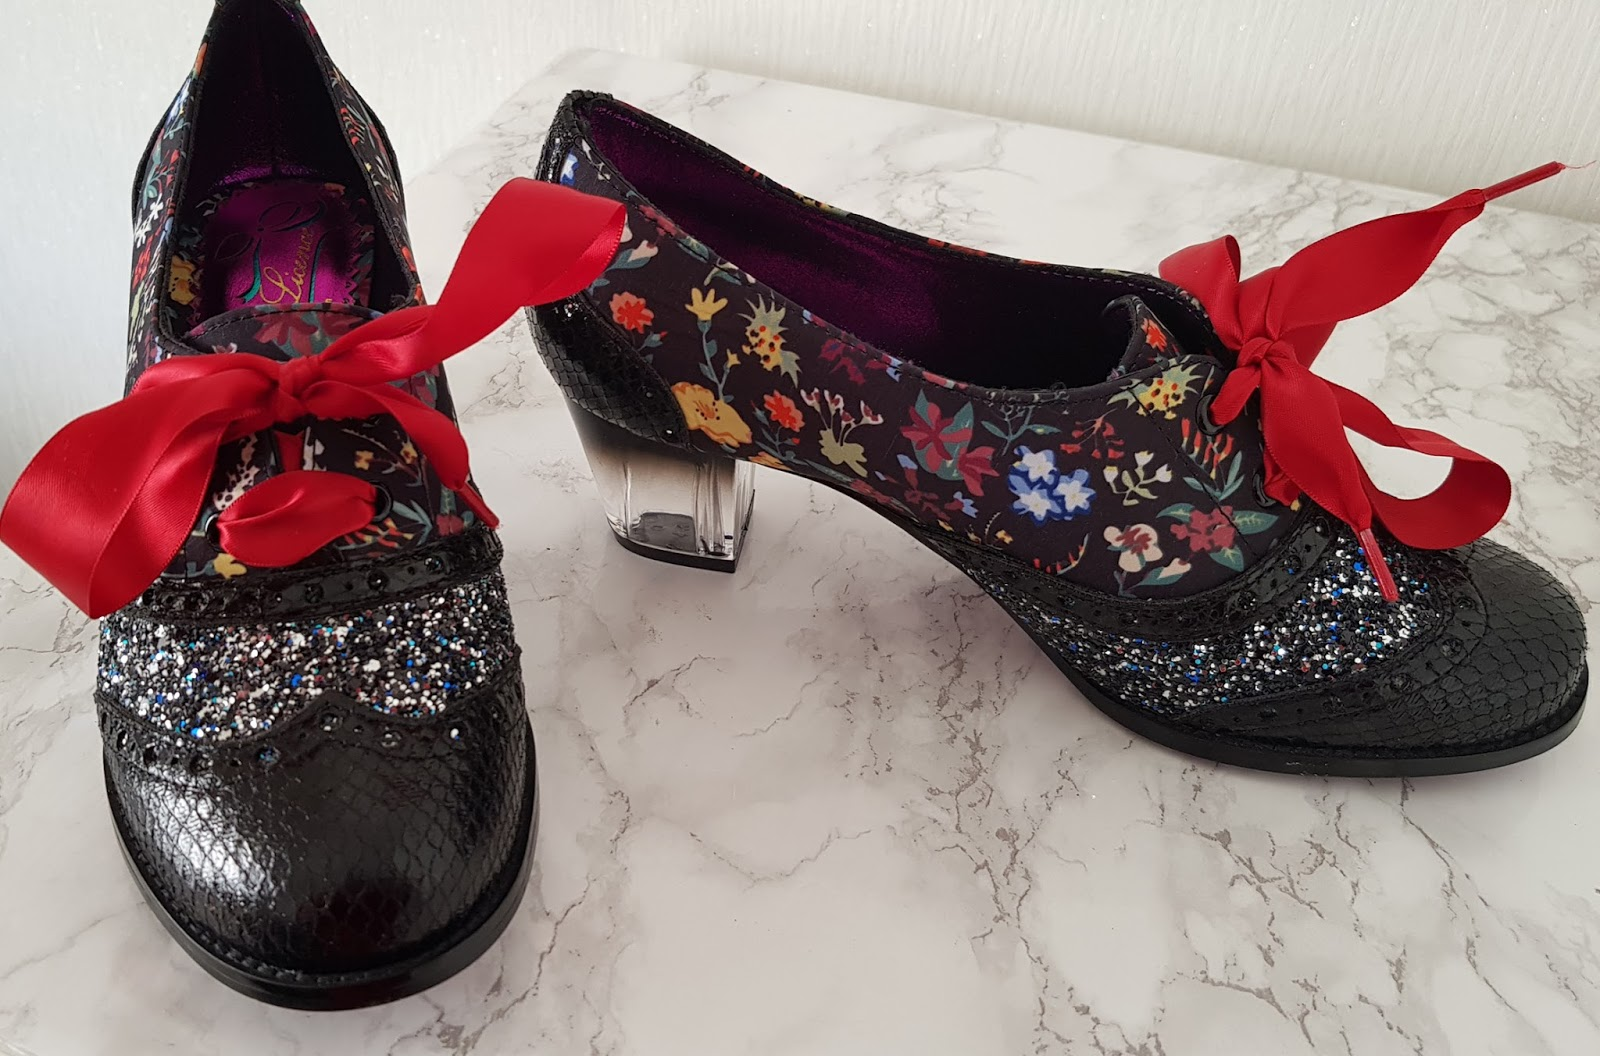 Image showing black and red womens shoes decorated with patterns and sparkles and clear perspex heels. By Poetic Licence.